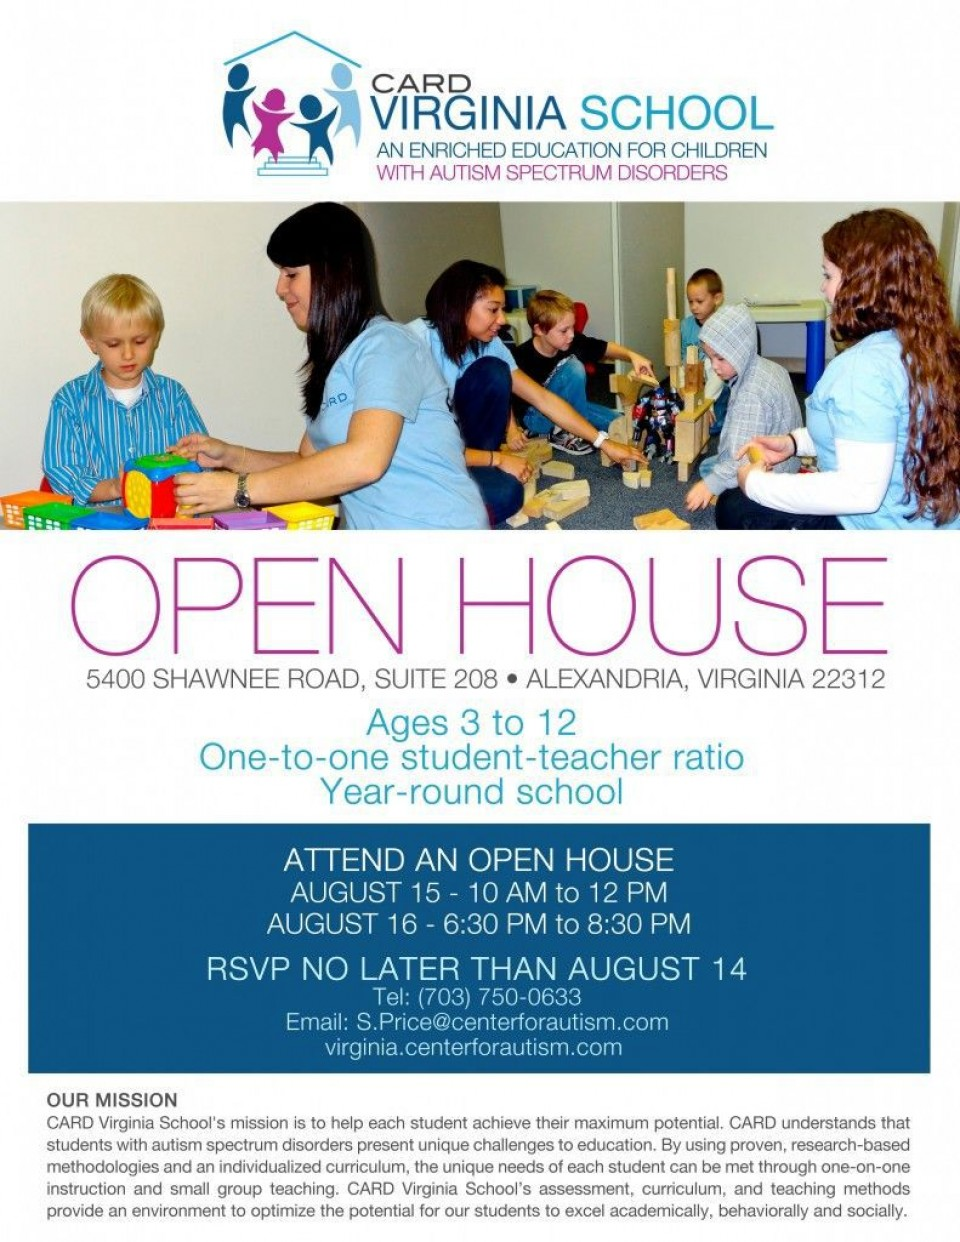 003 Surprising School Open House Flyer Template Image  Elementary Free Word960